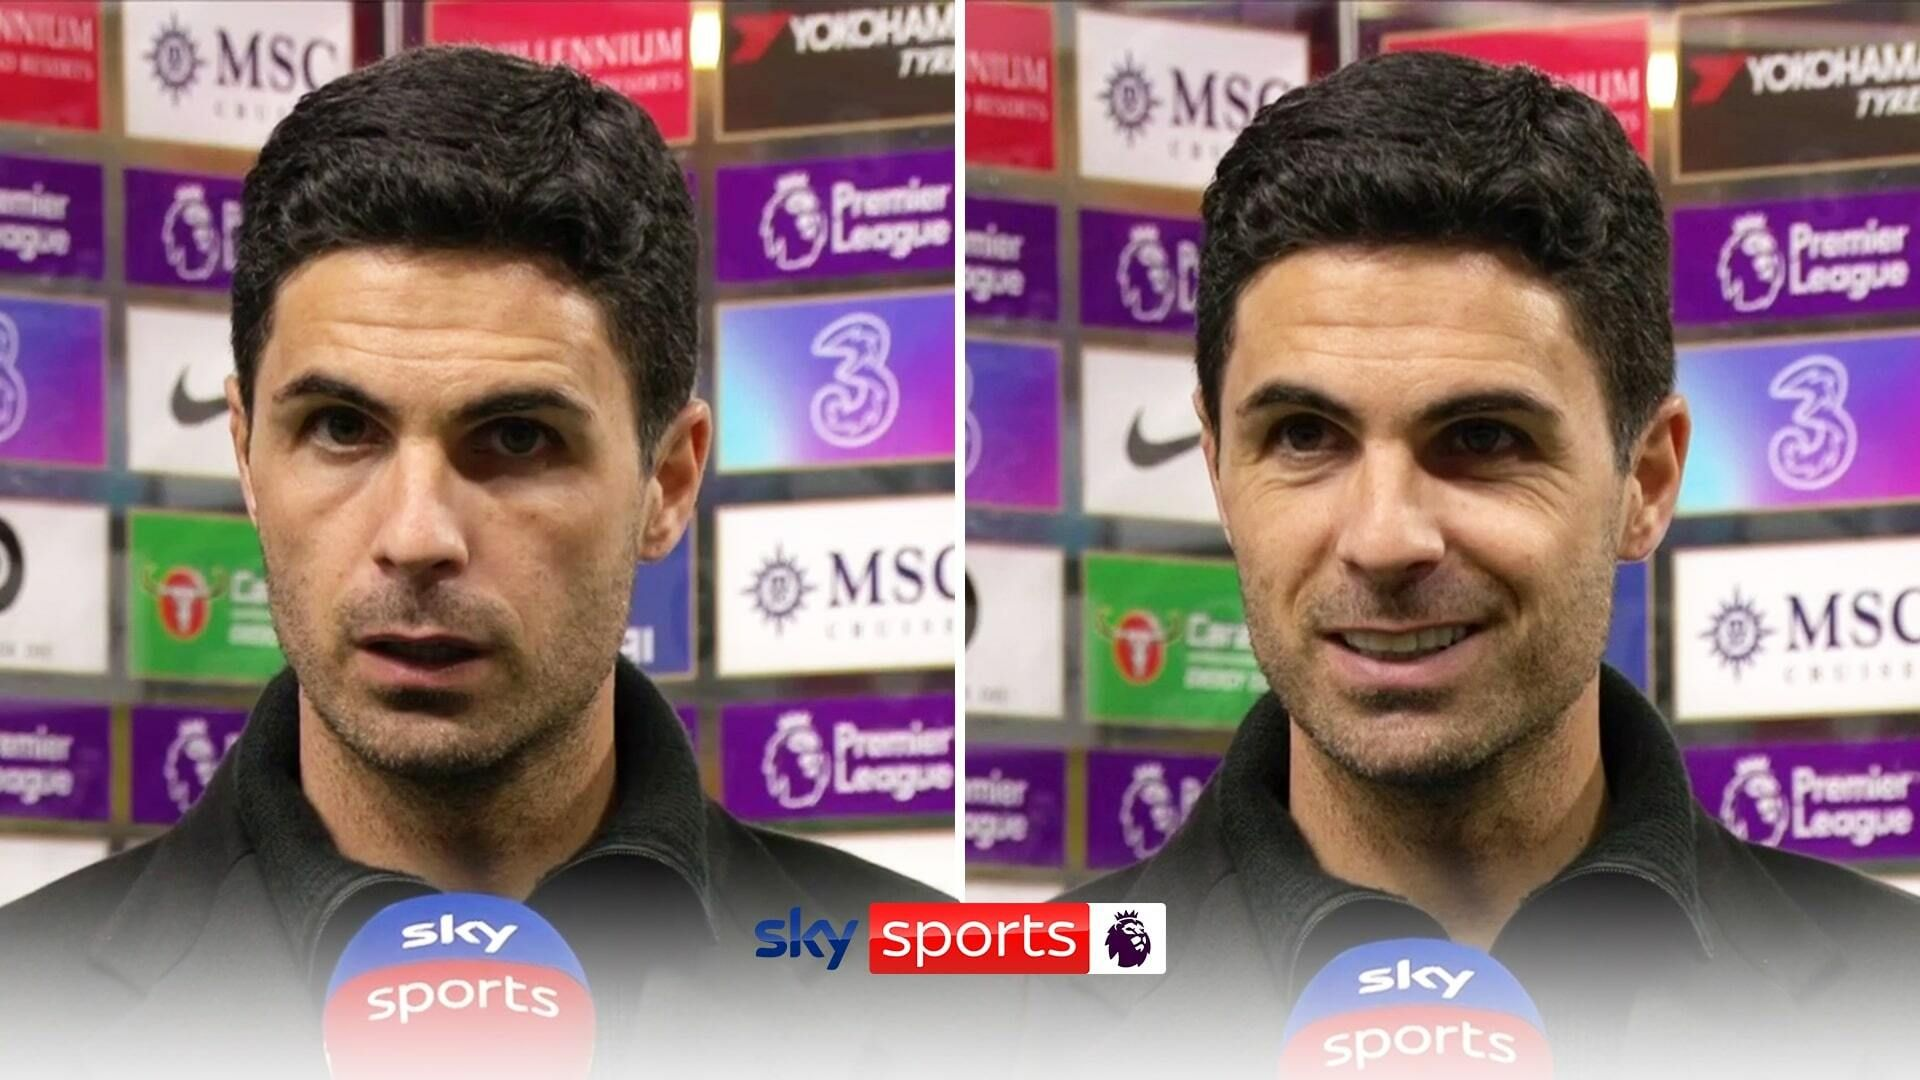 Mikel Arteta: Arsenal boss hits out at media and says he will always defend his